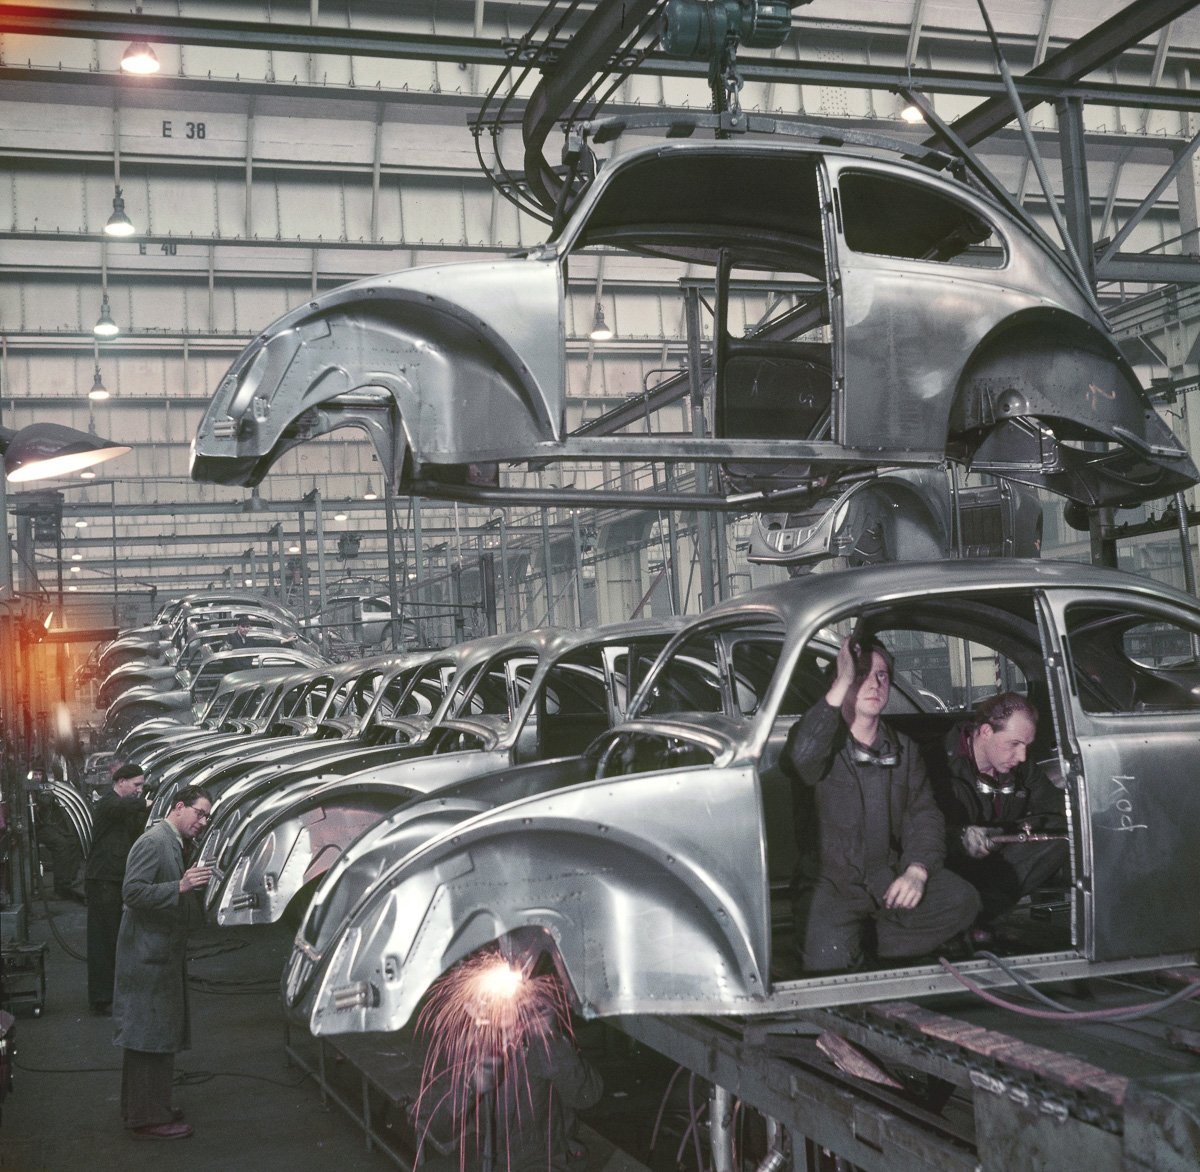 (GERMANY OUT) Germany, car industry. Economical miracle. Production of the Volkswagen Beetle at the VW plant in Wolfsburg - 1952 Picture: Wolff & Tritschler (Photo by Wolff & Tritschler/ullstein bild via Getty Images)